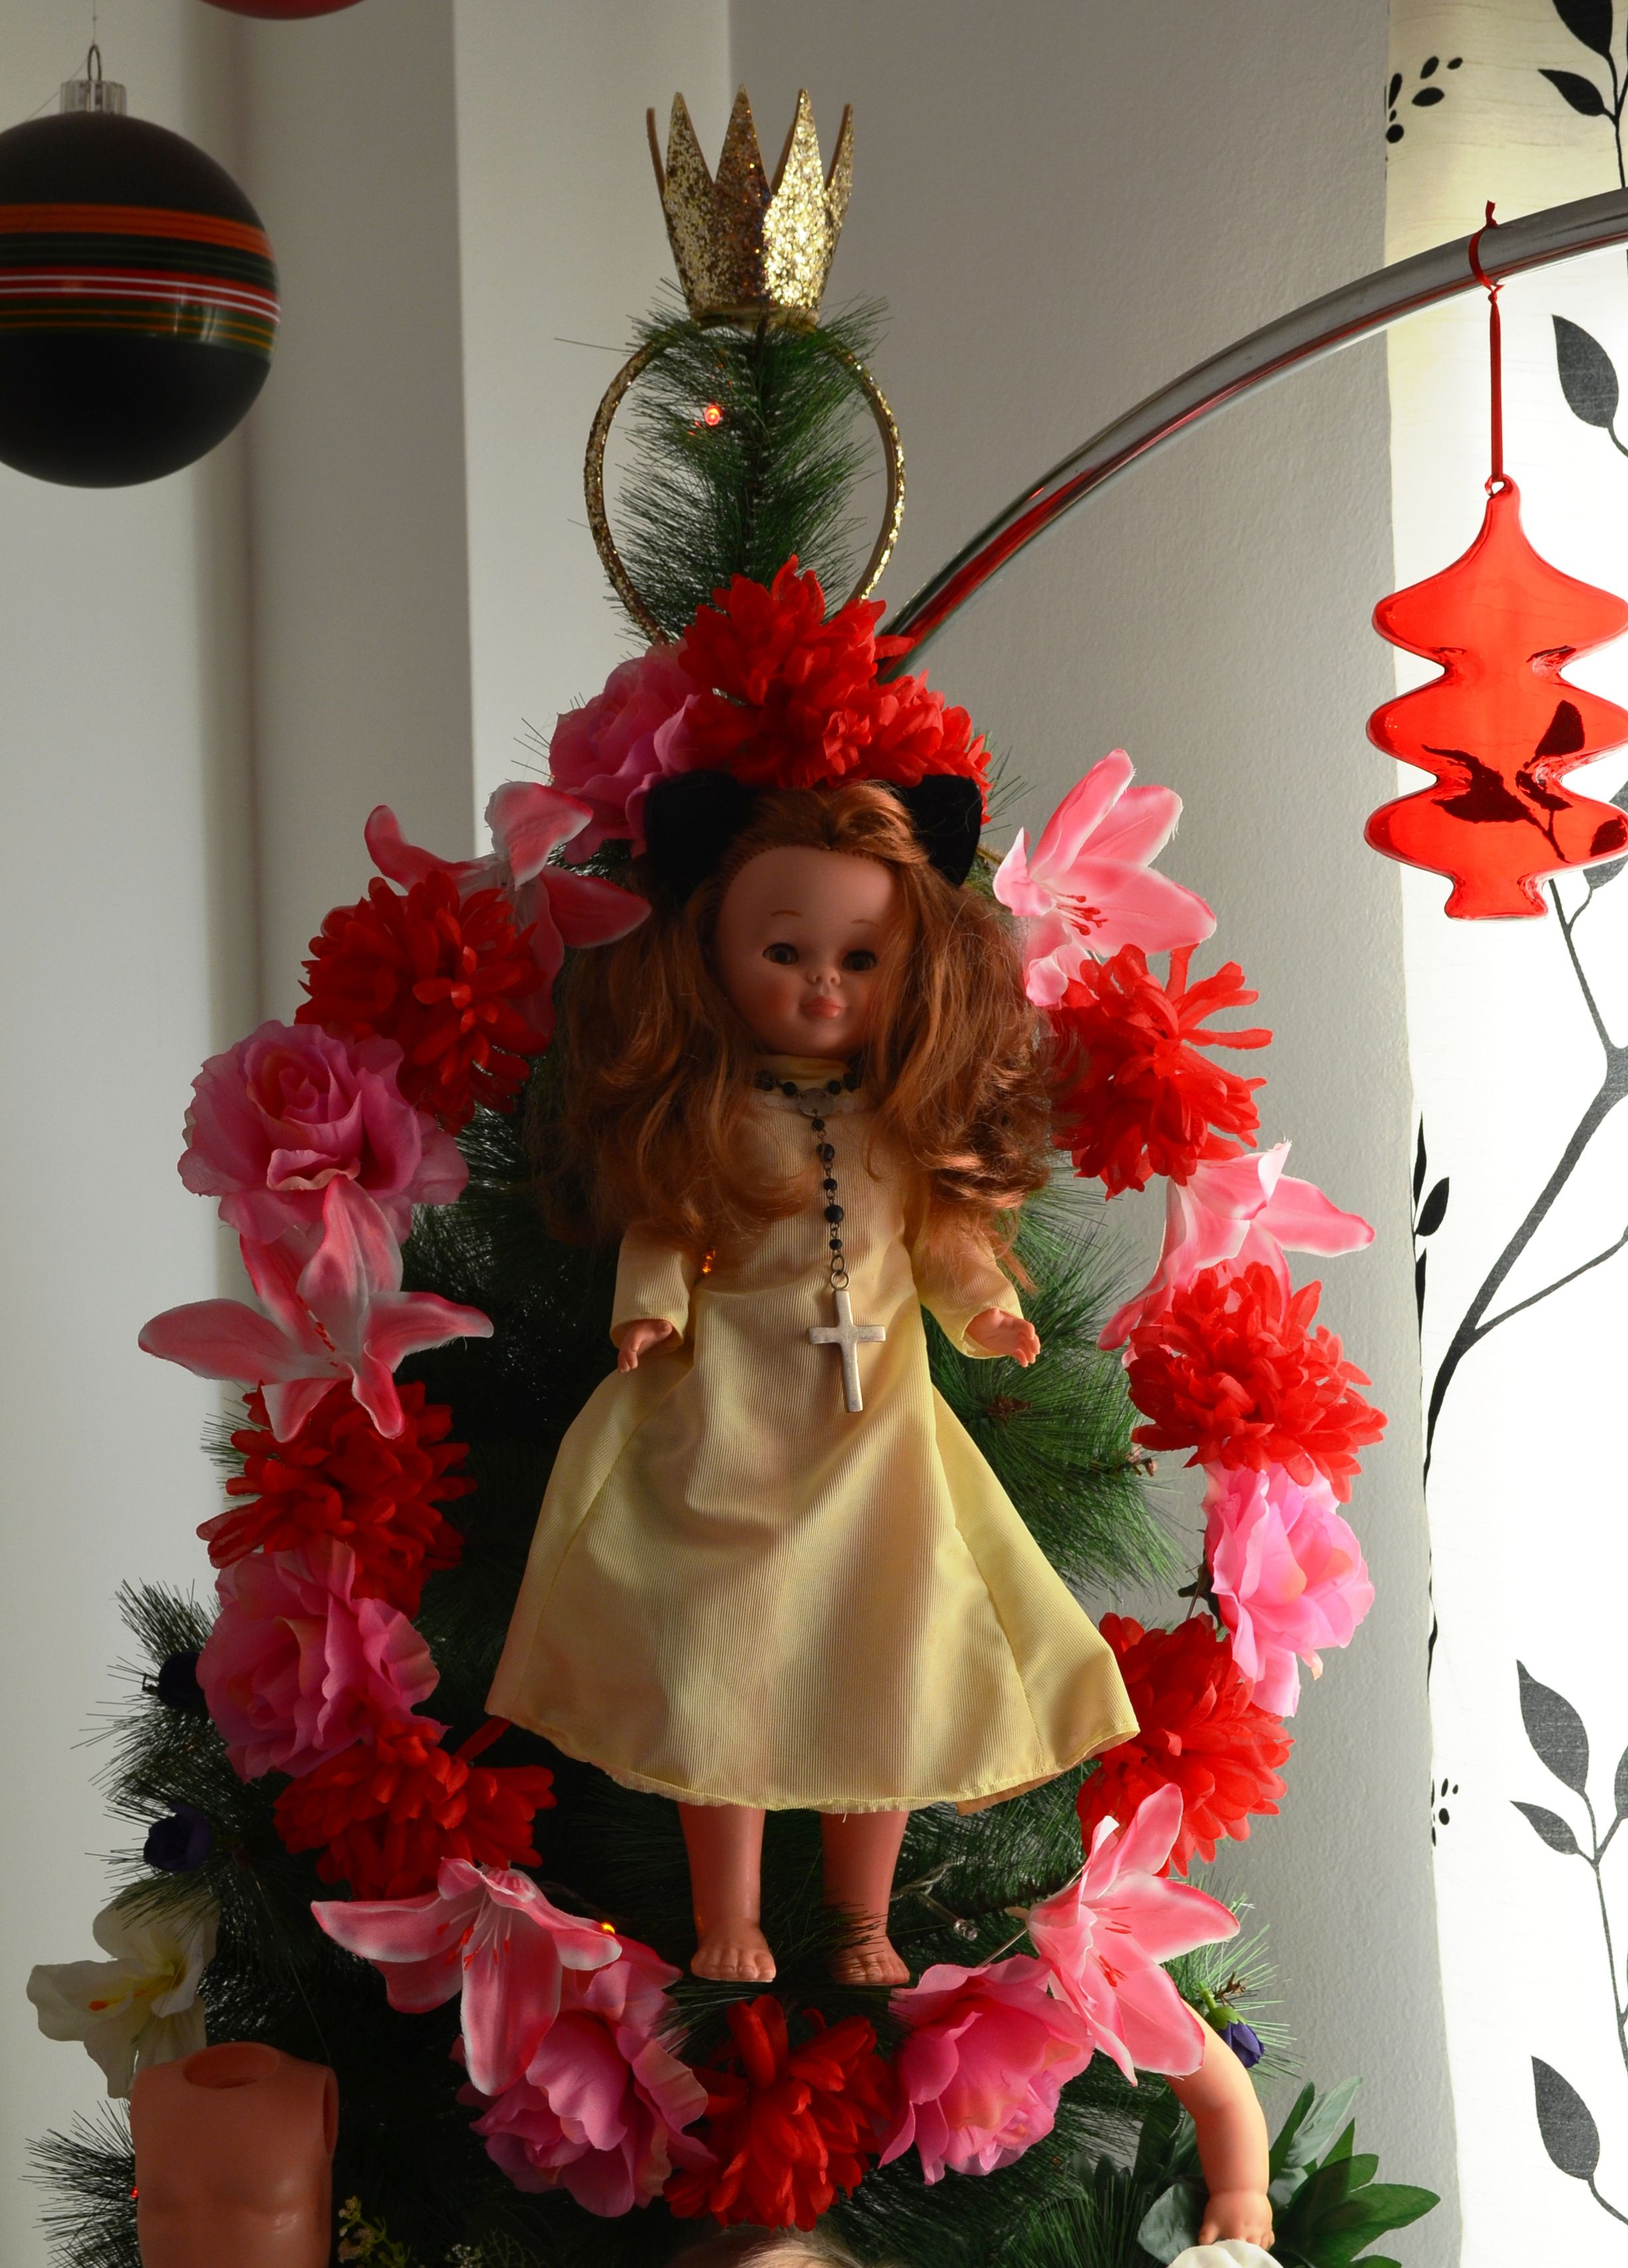 Nancy doll and flowers. Own Christmas tree.